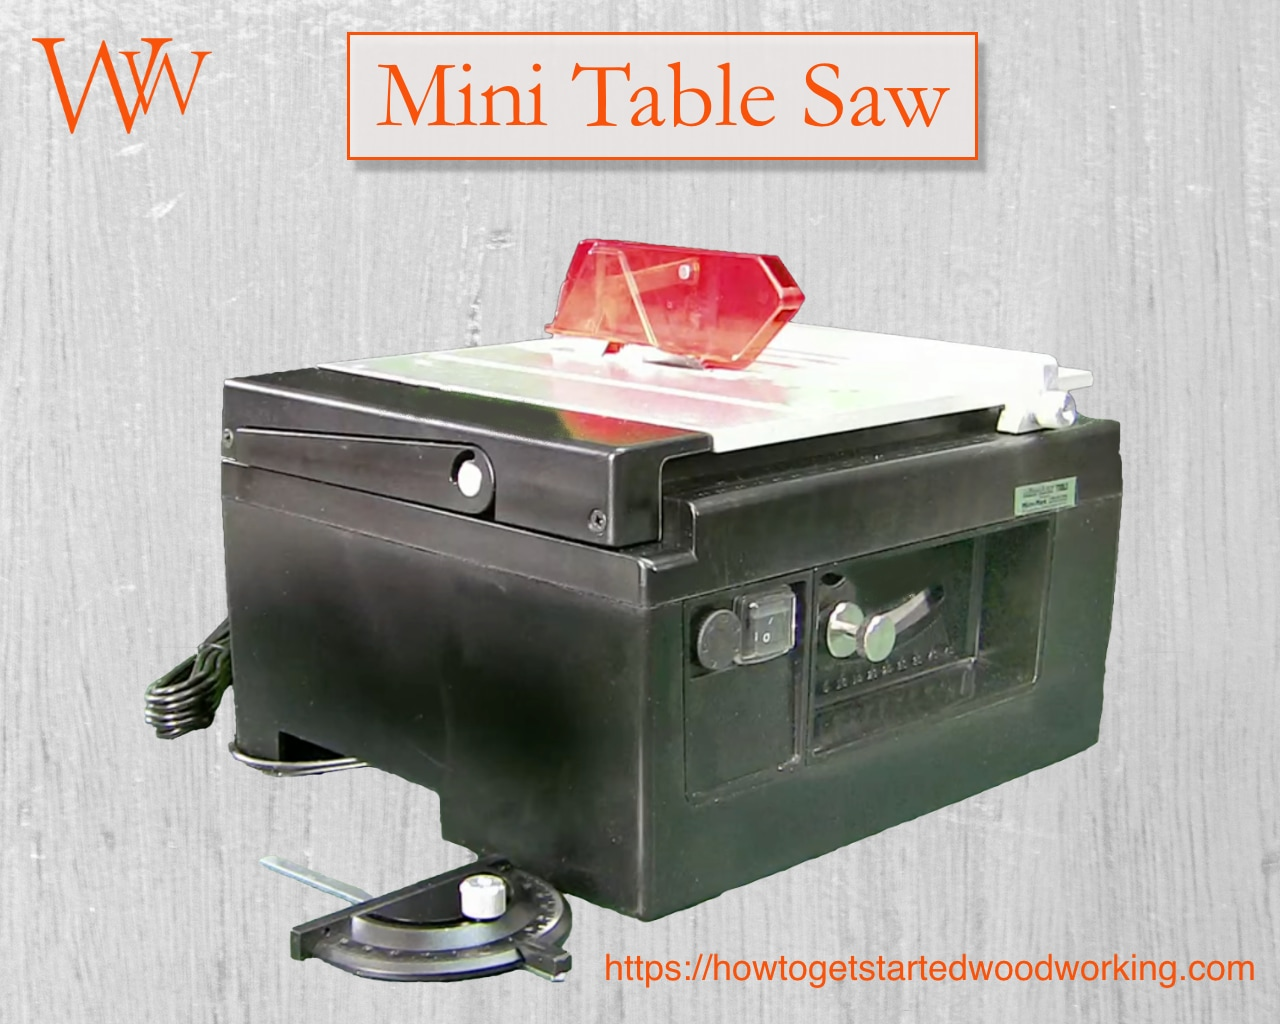 Miniature Table Saw